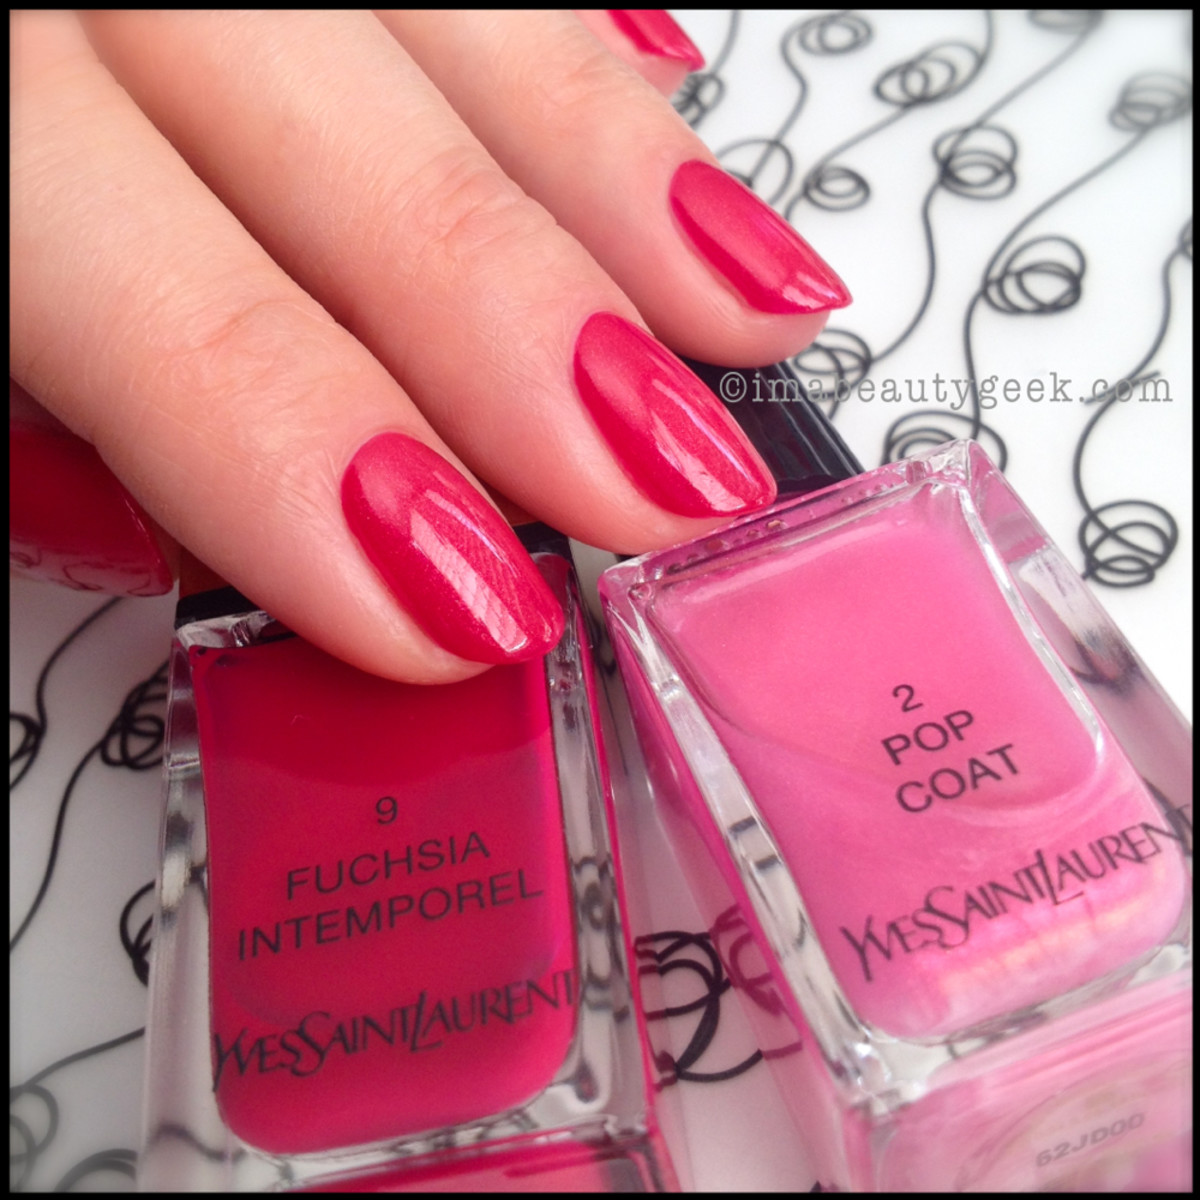 YSL Fuchsia Intemporel 9 YSL Pop Coat 2_YSL Polish